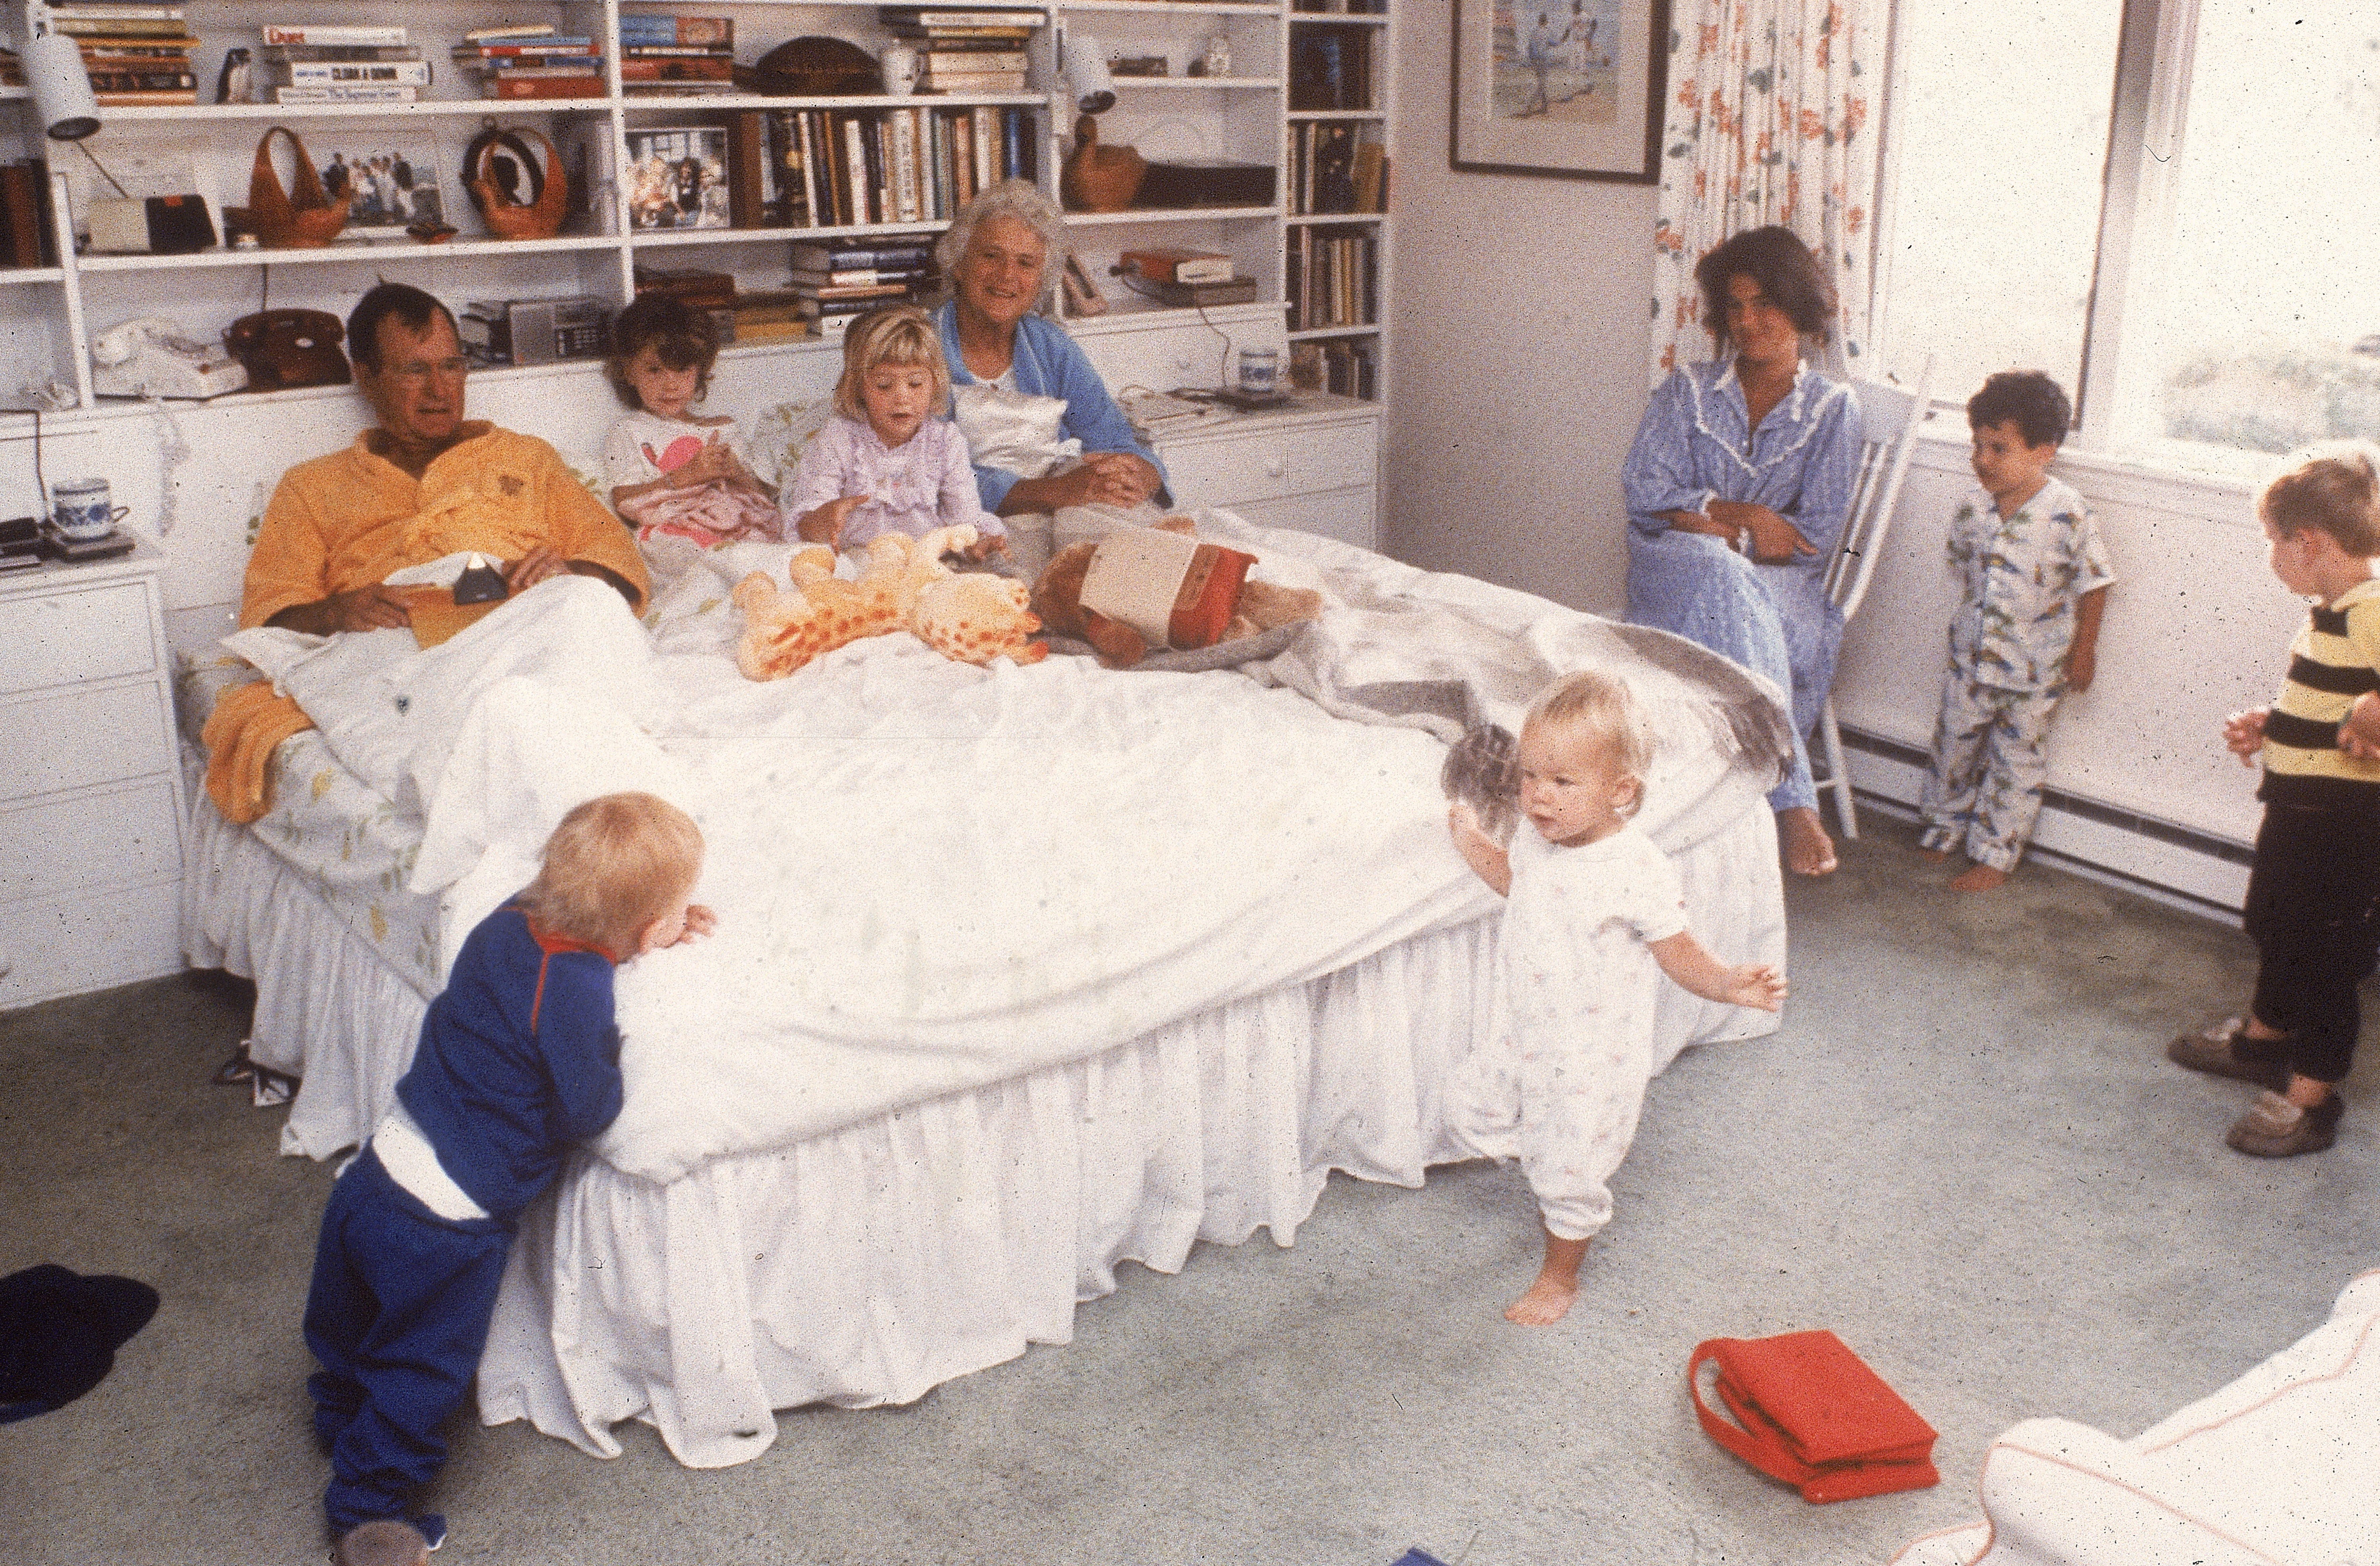 Vice president George  H.W. Bush and his wife Barbara relax in bed as their daughter and grandchildren join them at home in Kennebunkport, Maine in 1987.